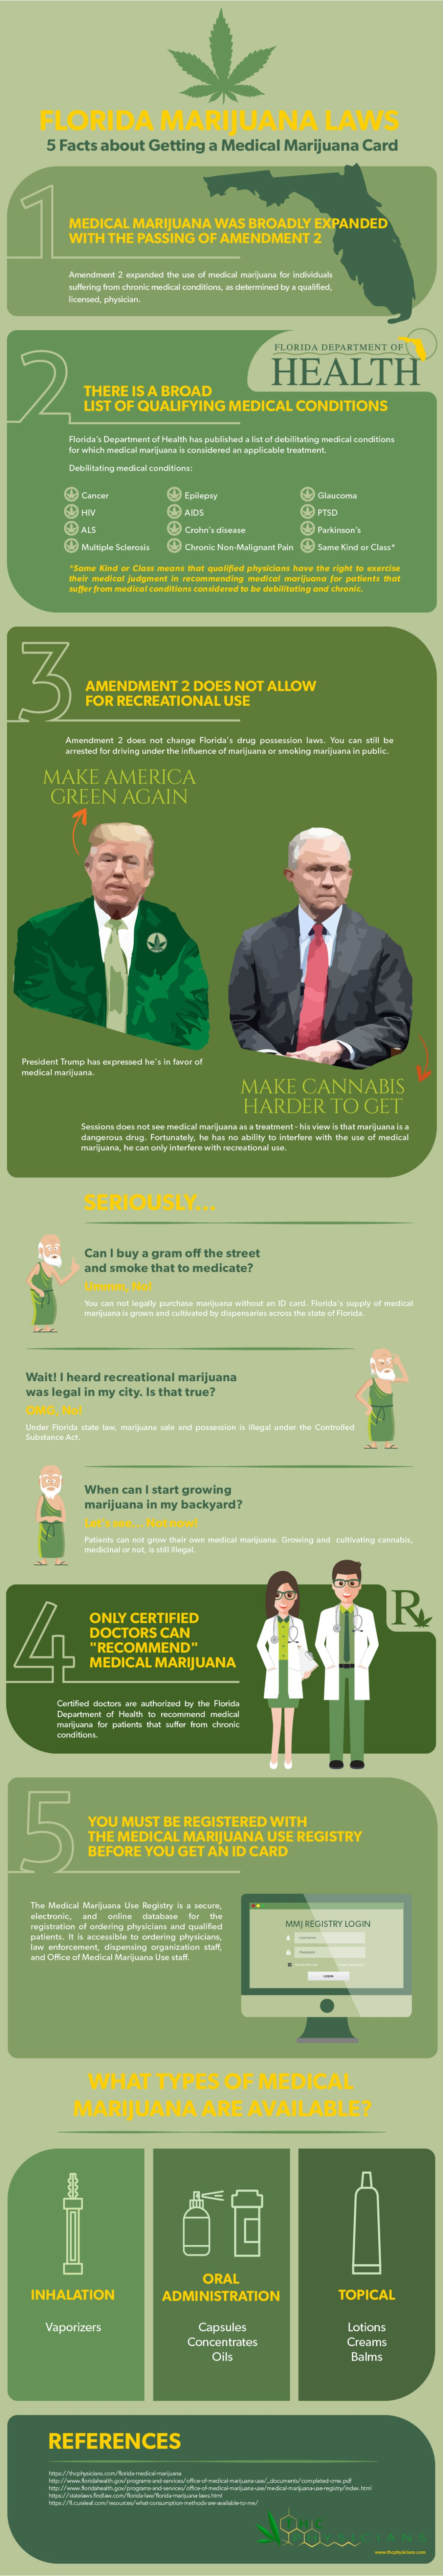 Who Qualifies for a Medical Marijuana Card: 5 Key Facts - Infographic